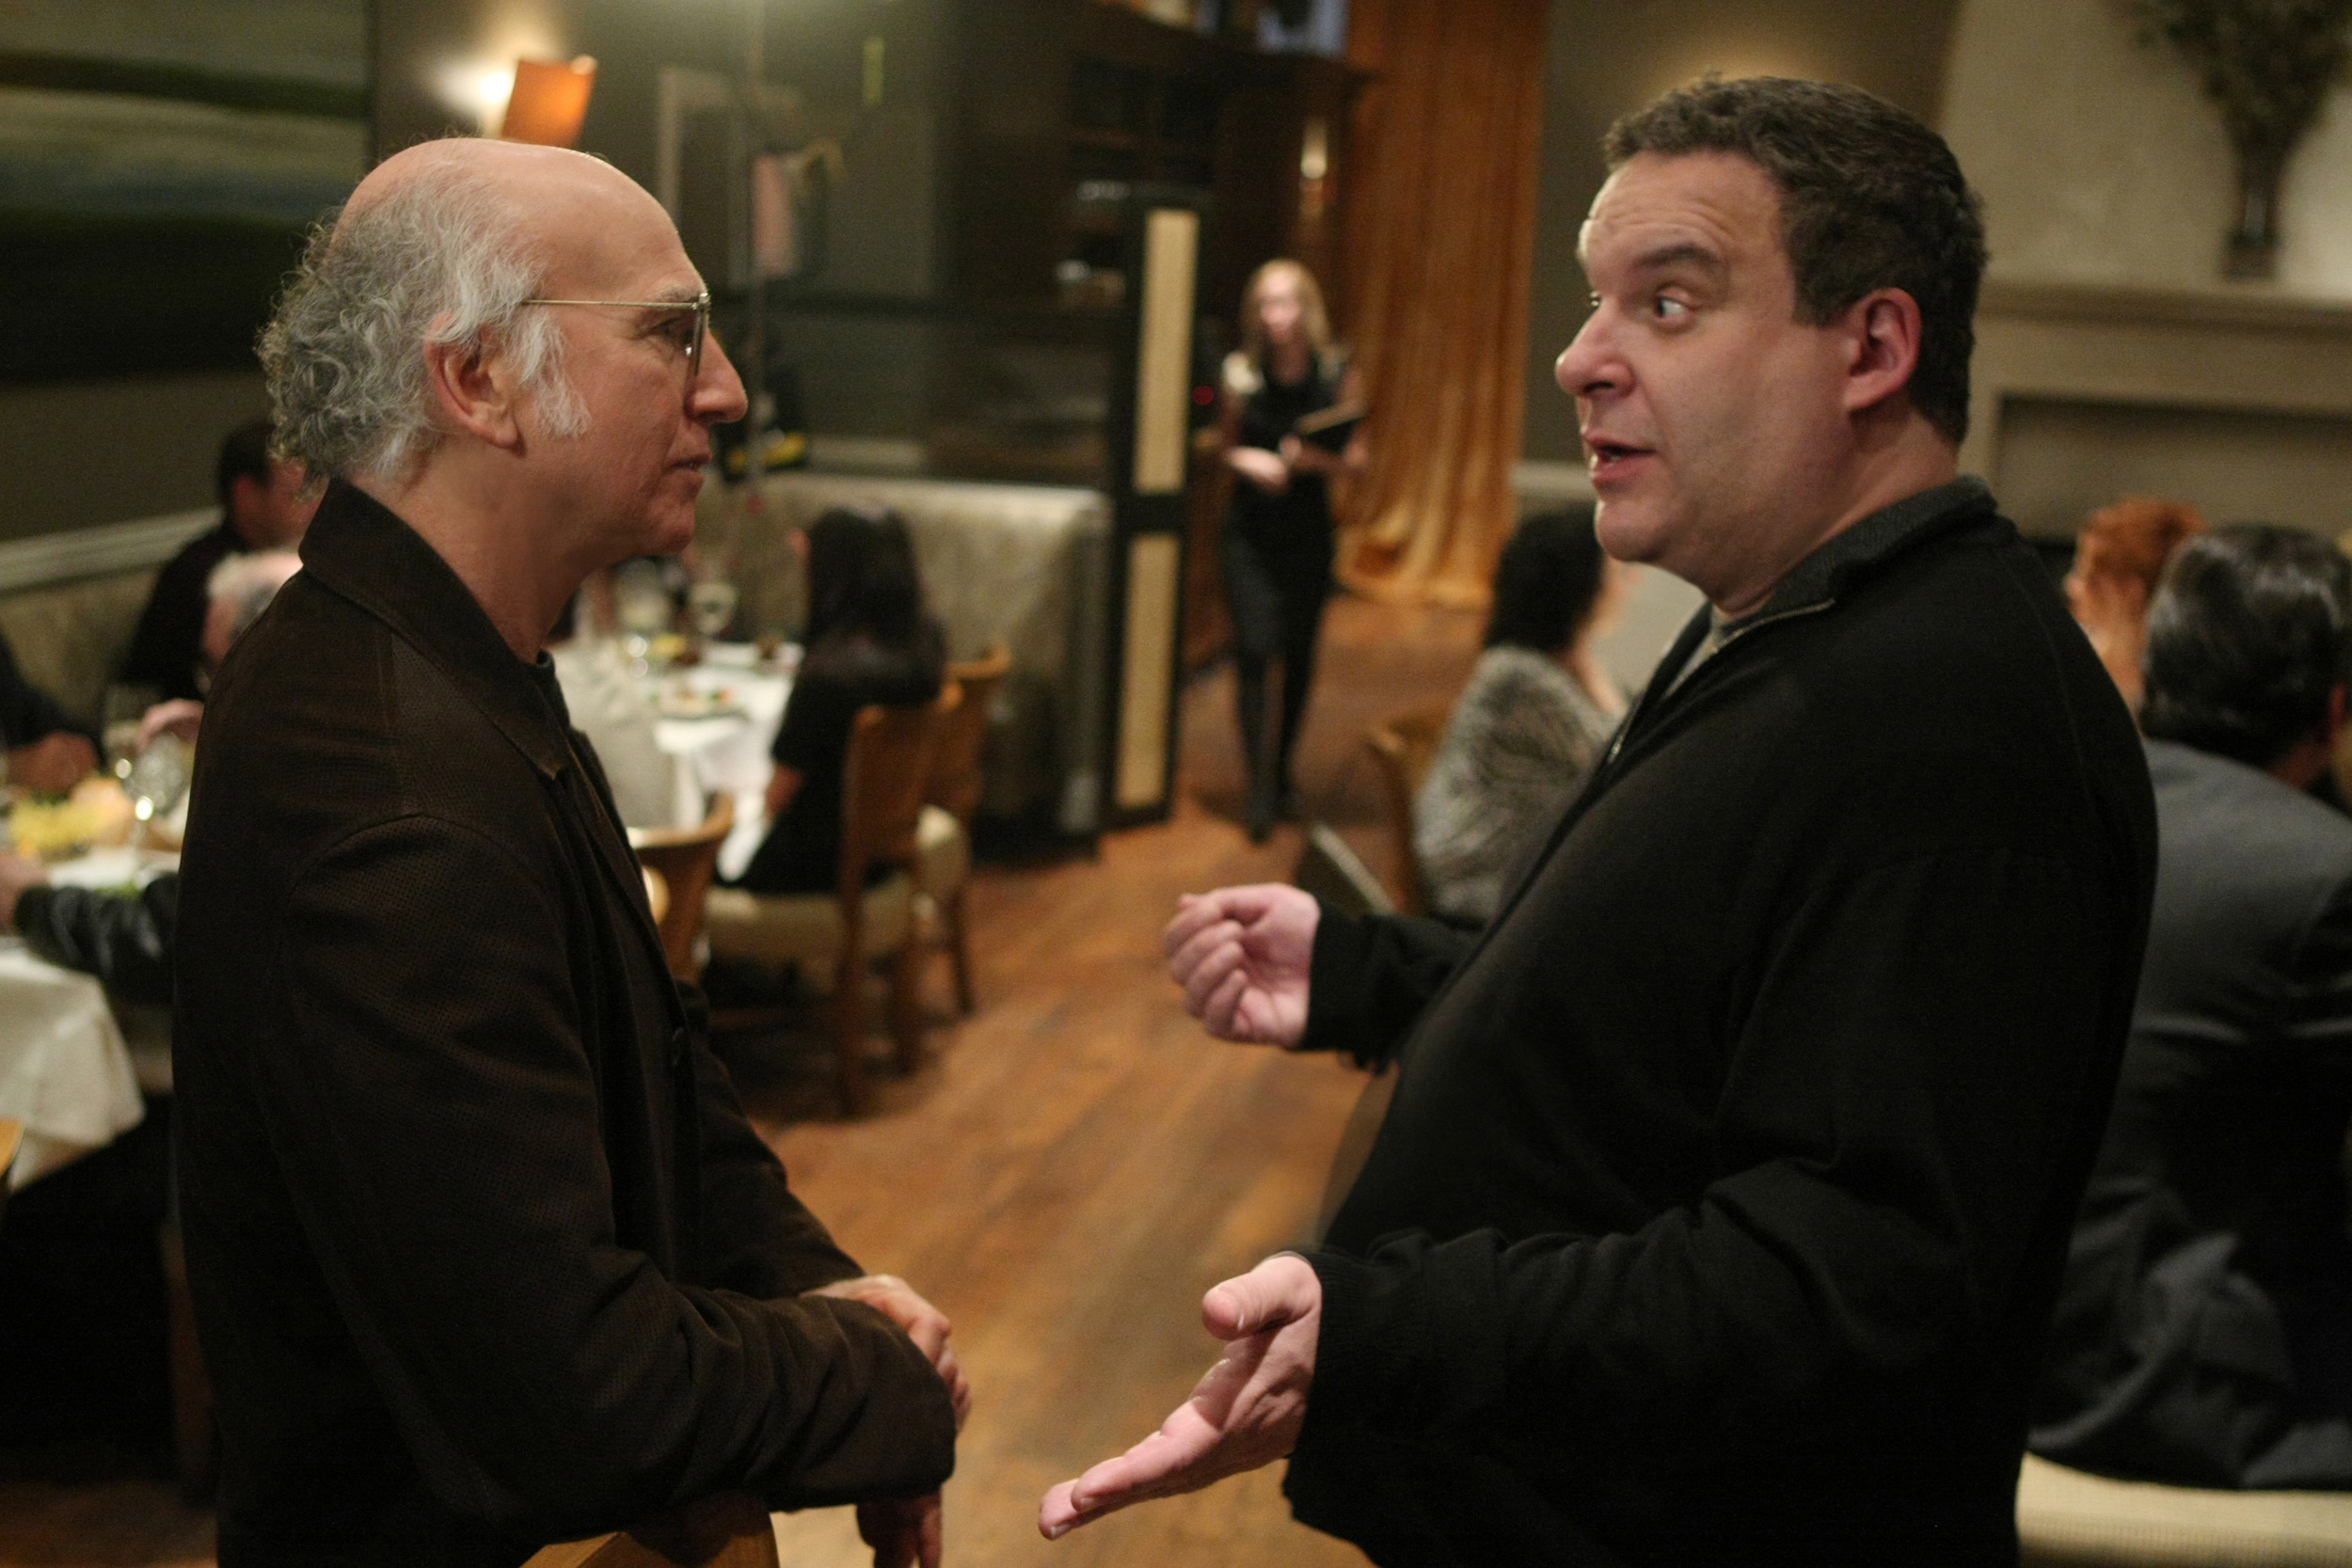 Larry David and Jeff Garlin (as Jeff Greene) in Curb Your Enthusiasm